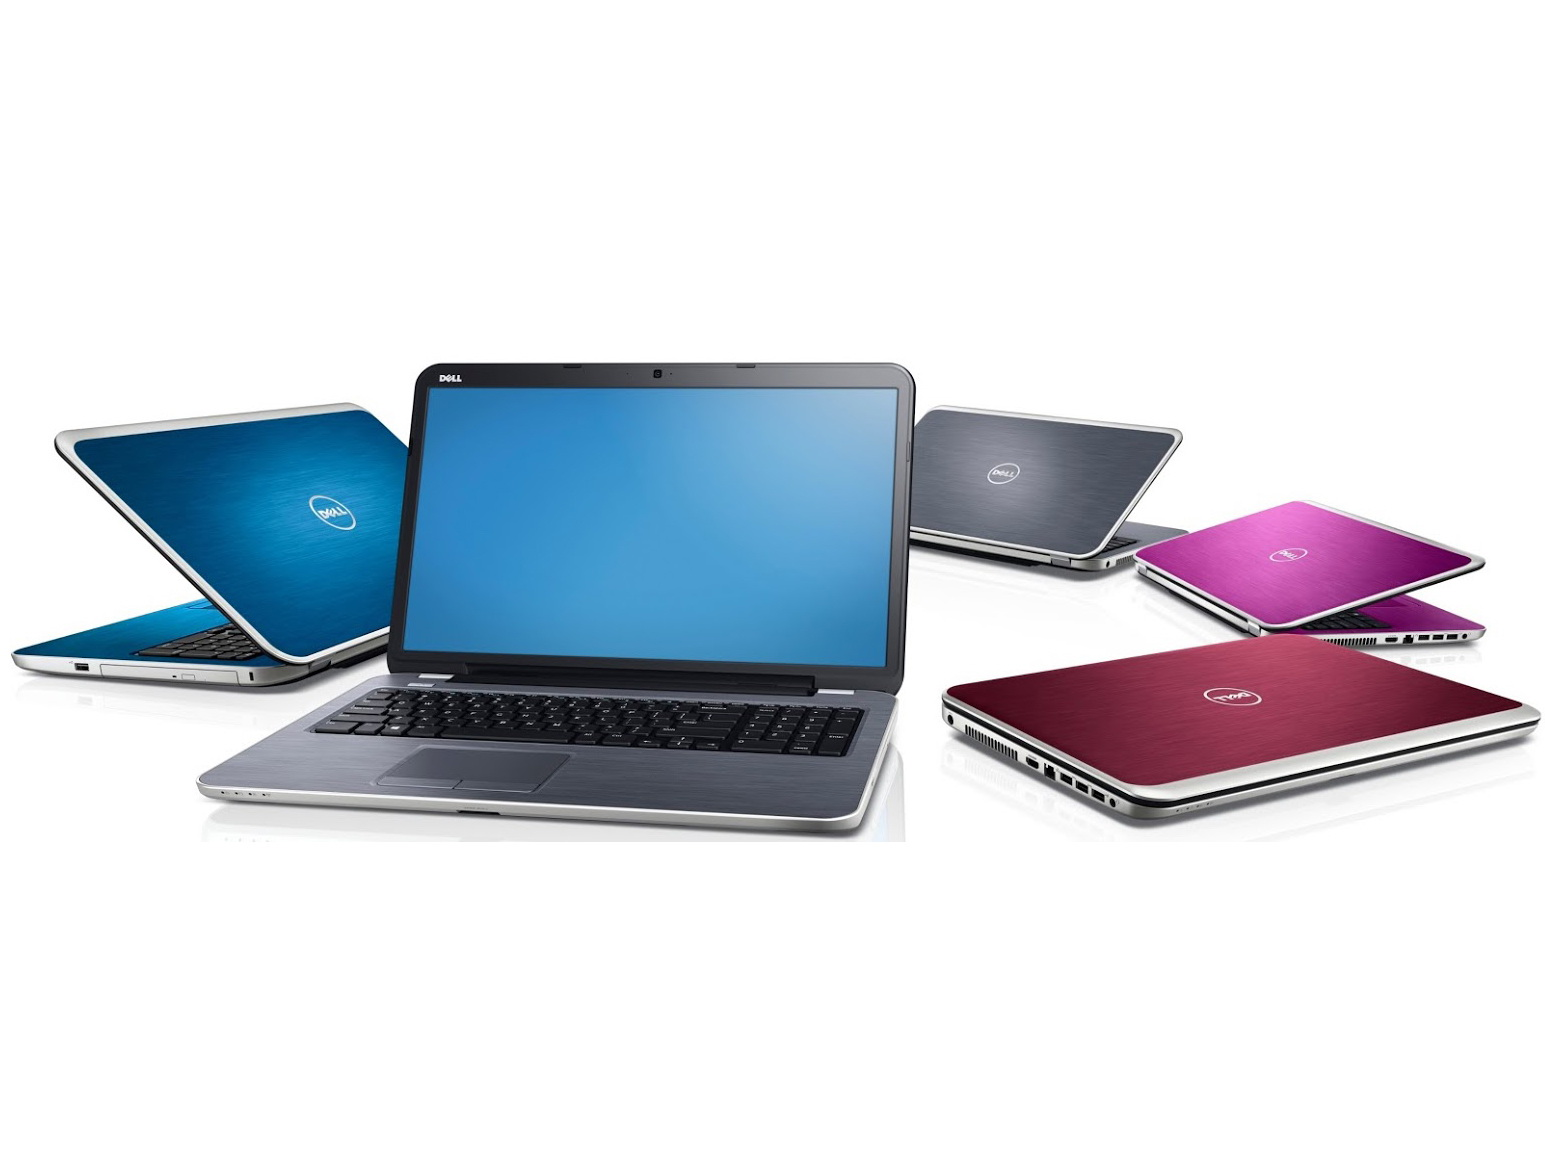 Dell Updates Inspiron 15 17 15r And 17r Notebooks